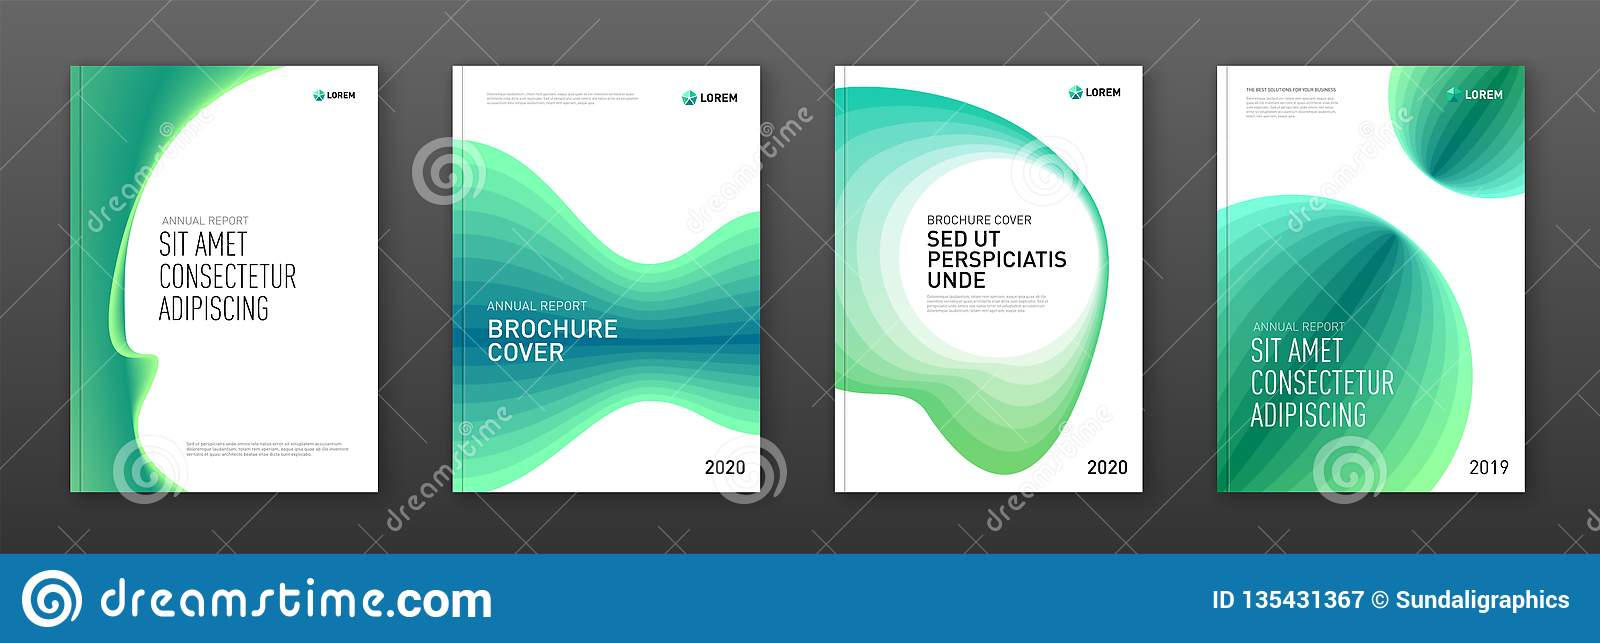 Annual report cover design templates set for business